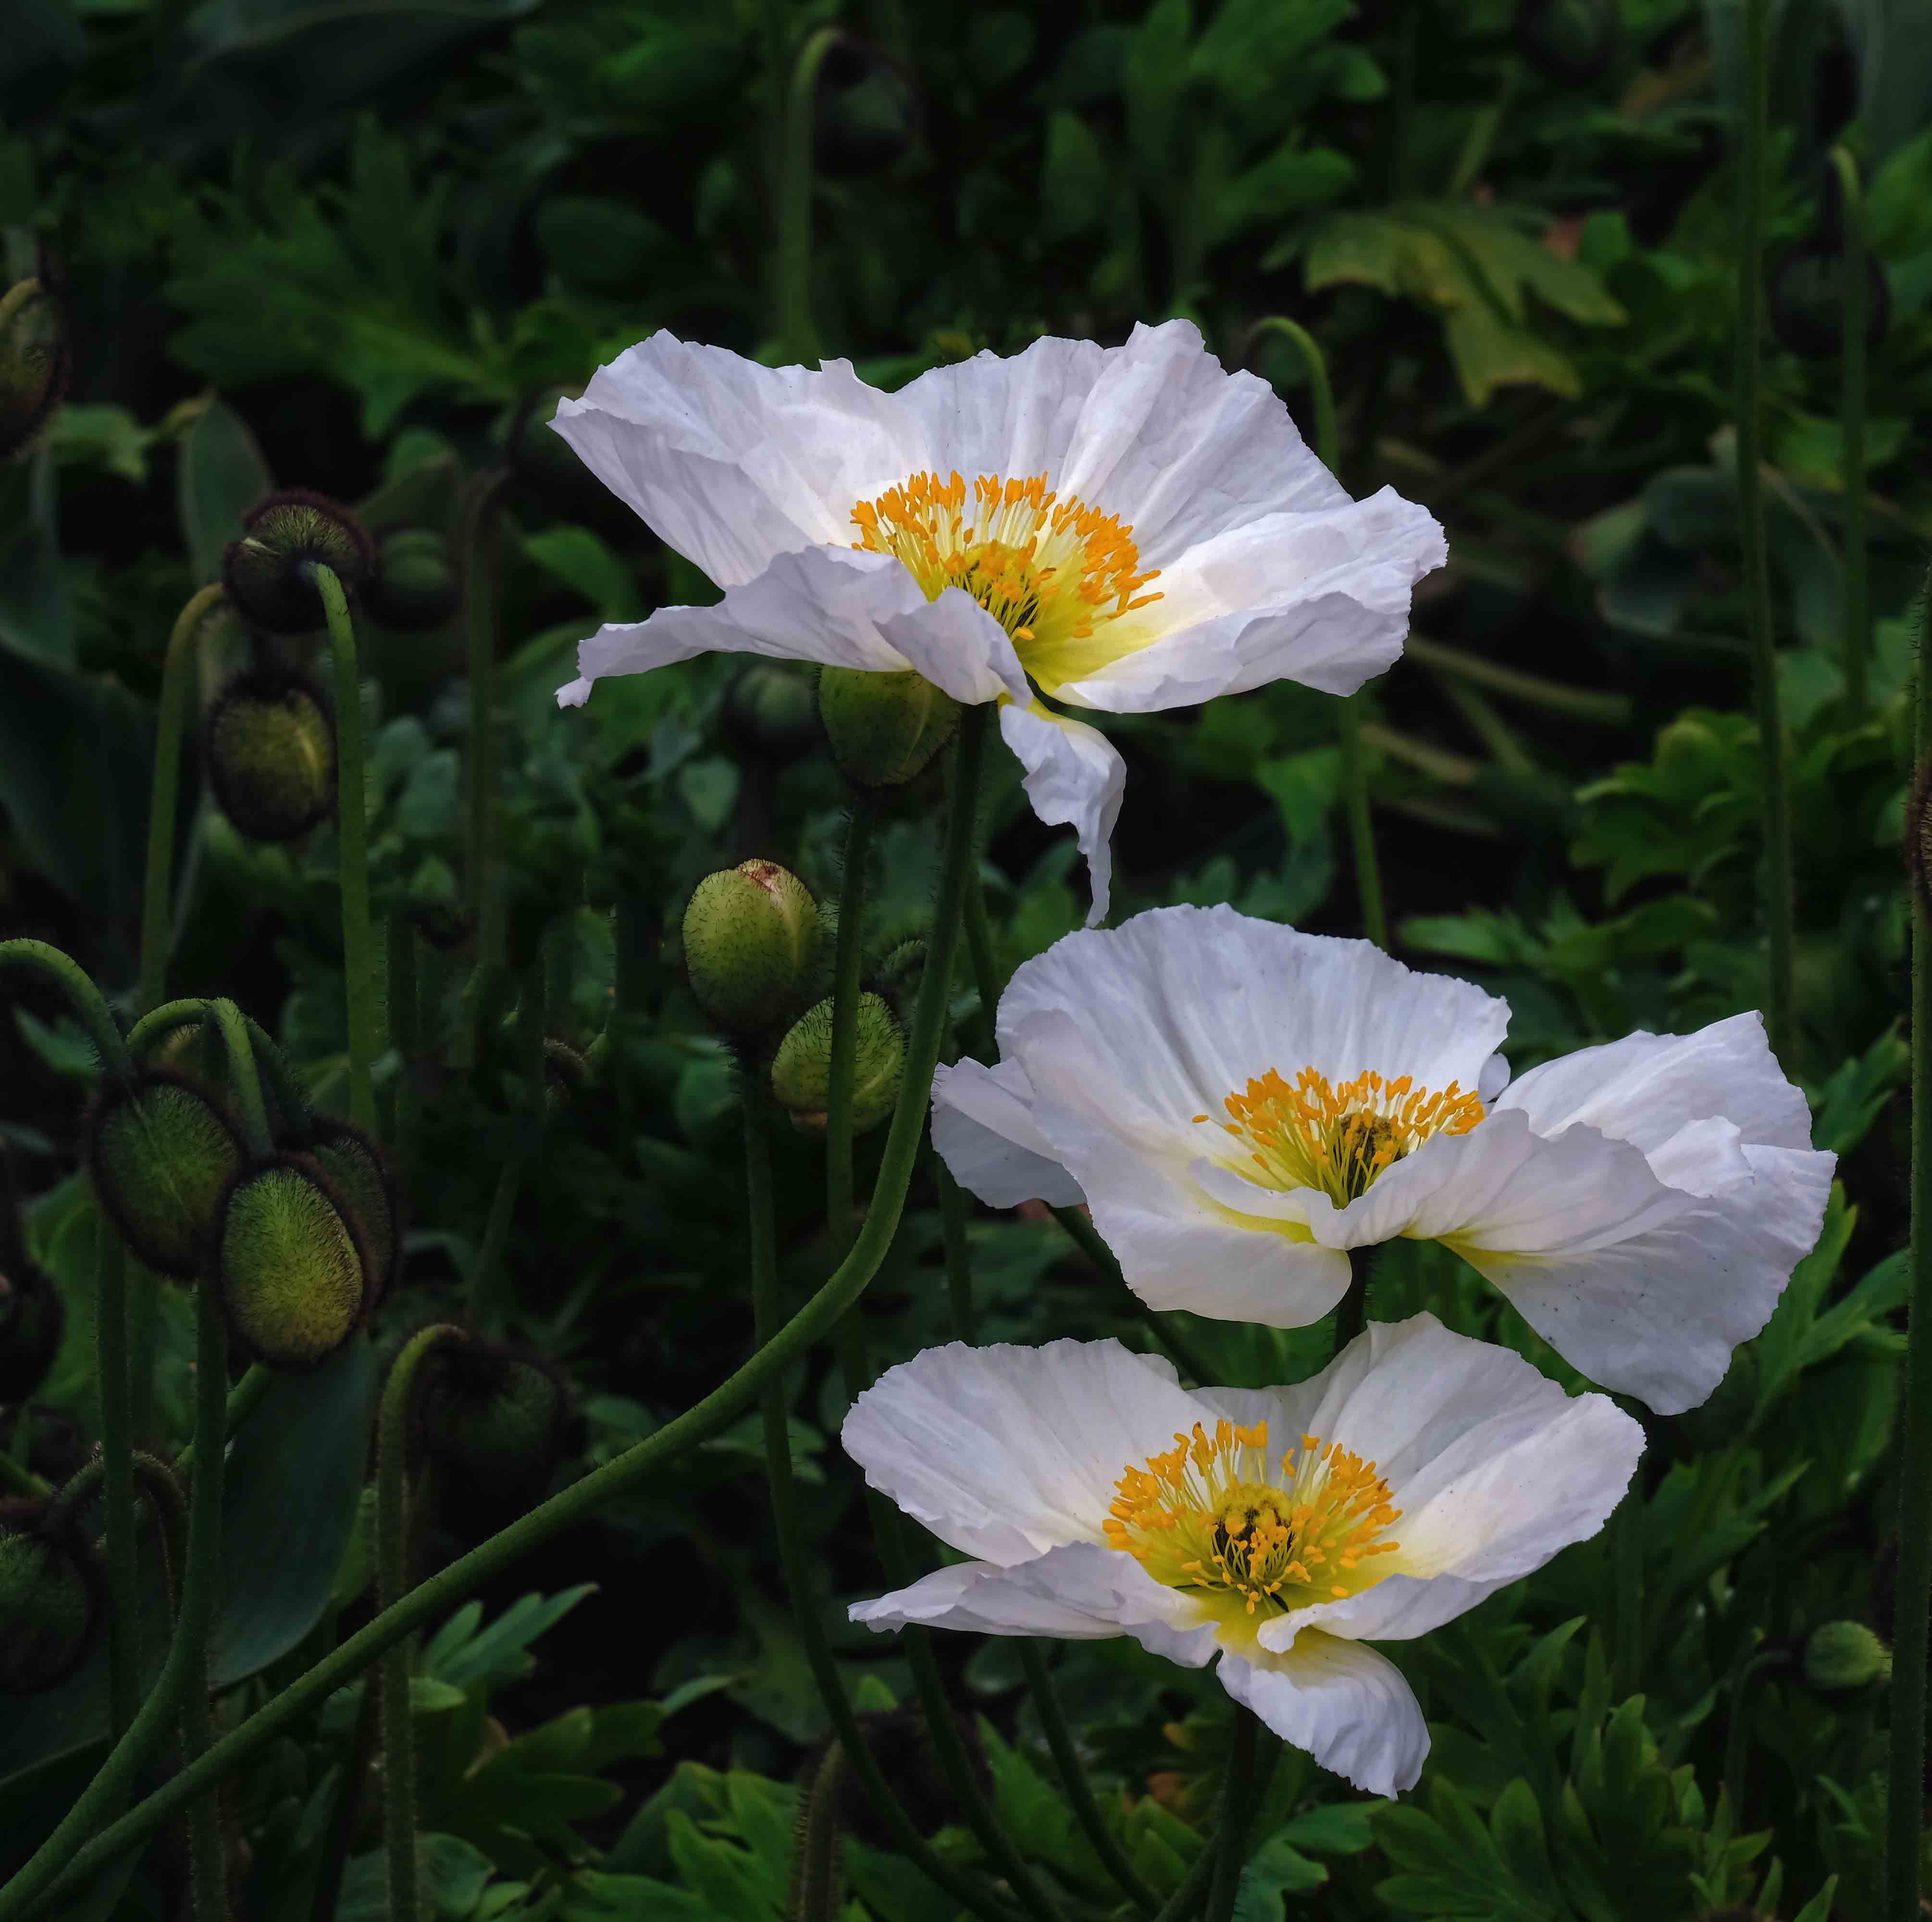 Maureen Pierre: White Poppies